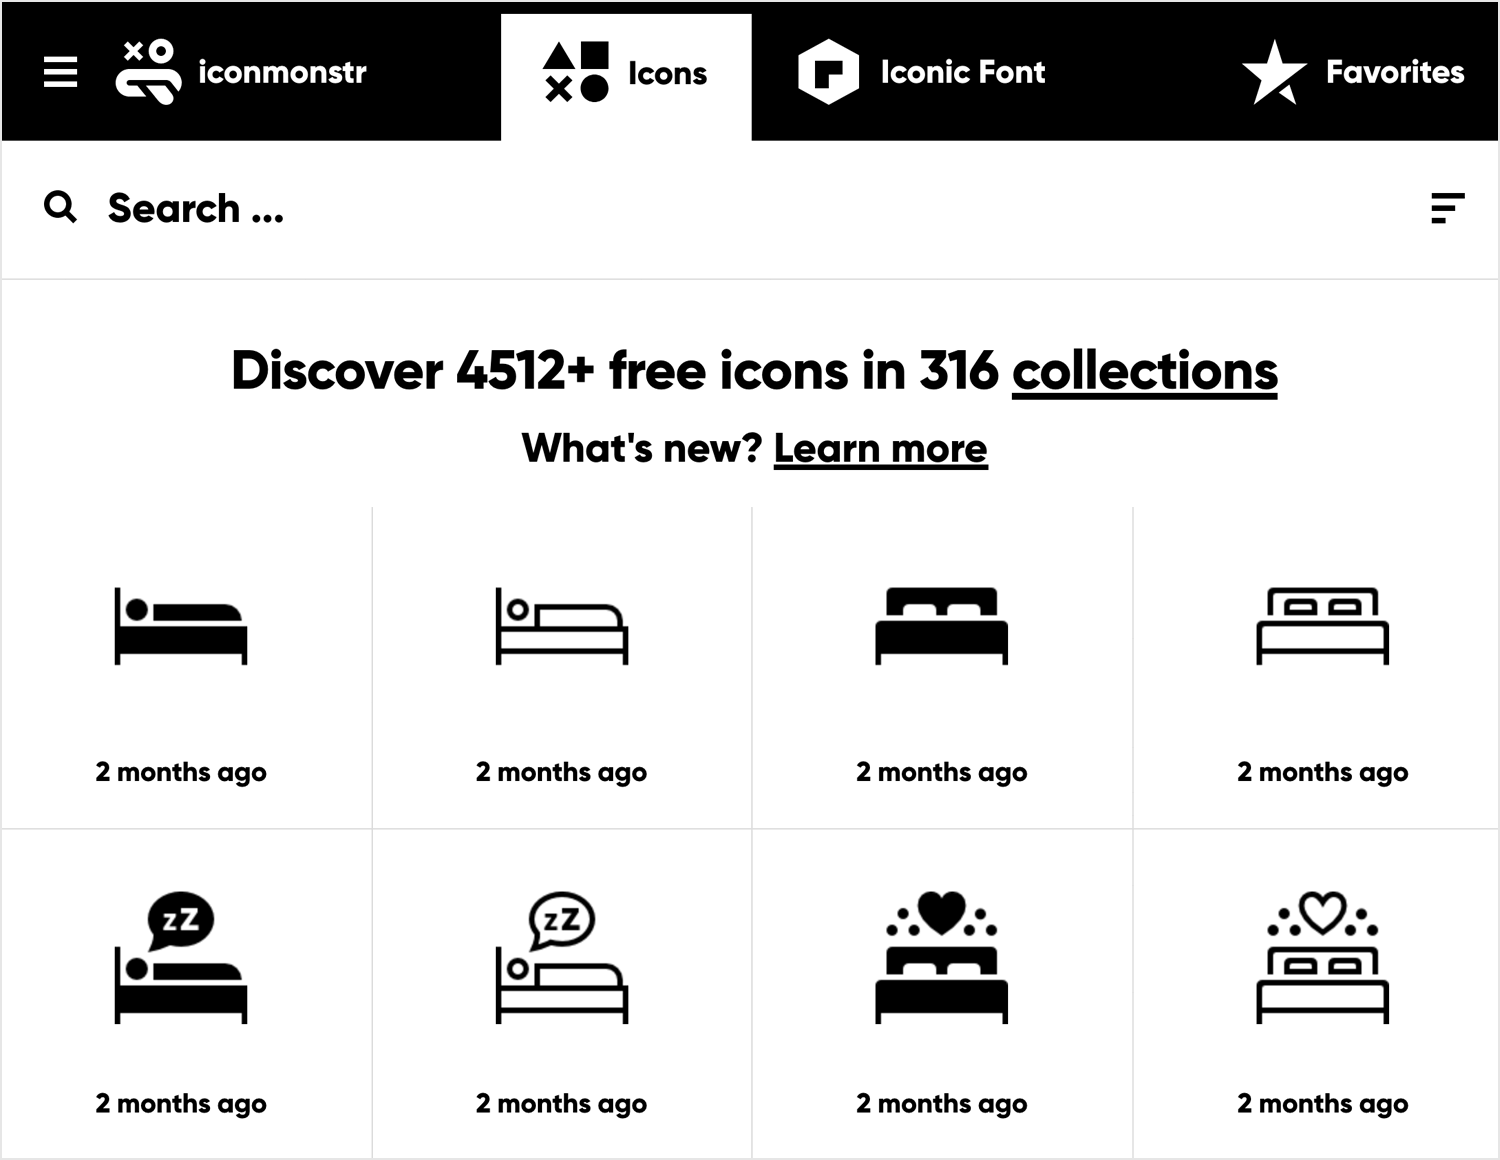 Free vector images - Iconmonstr homepage